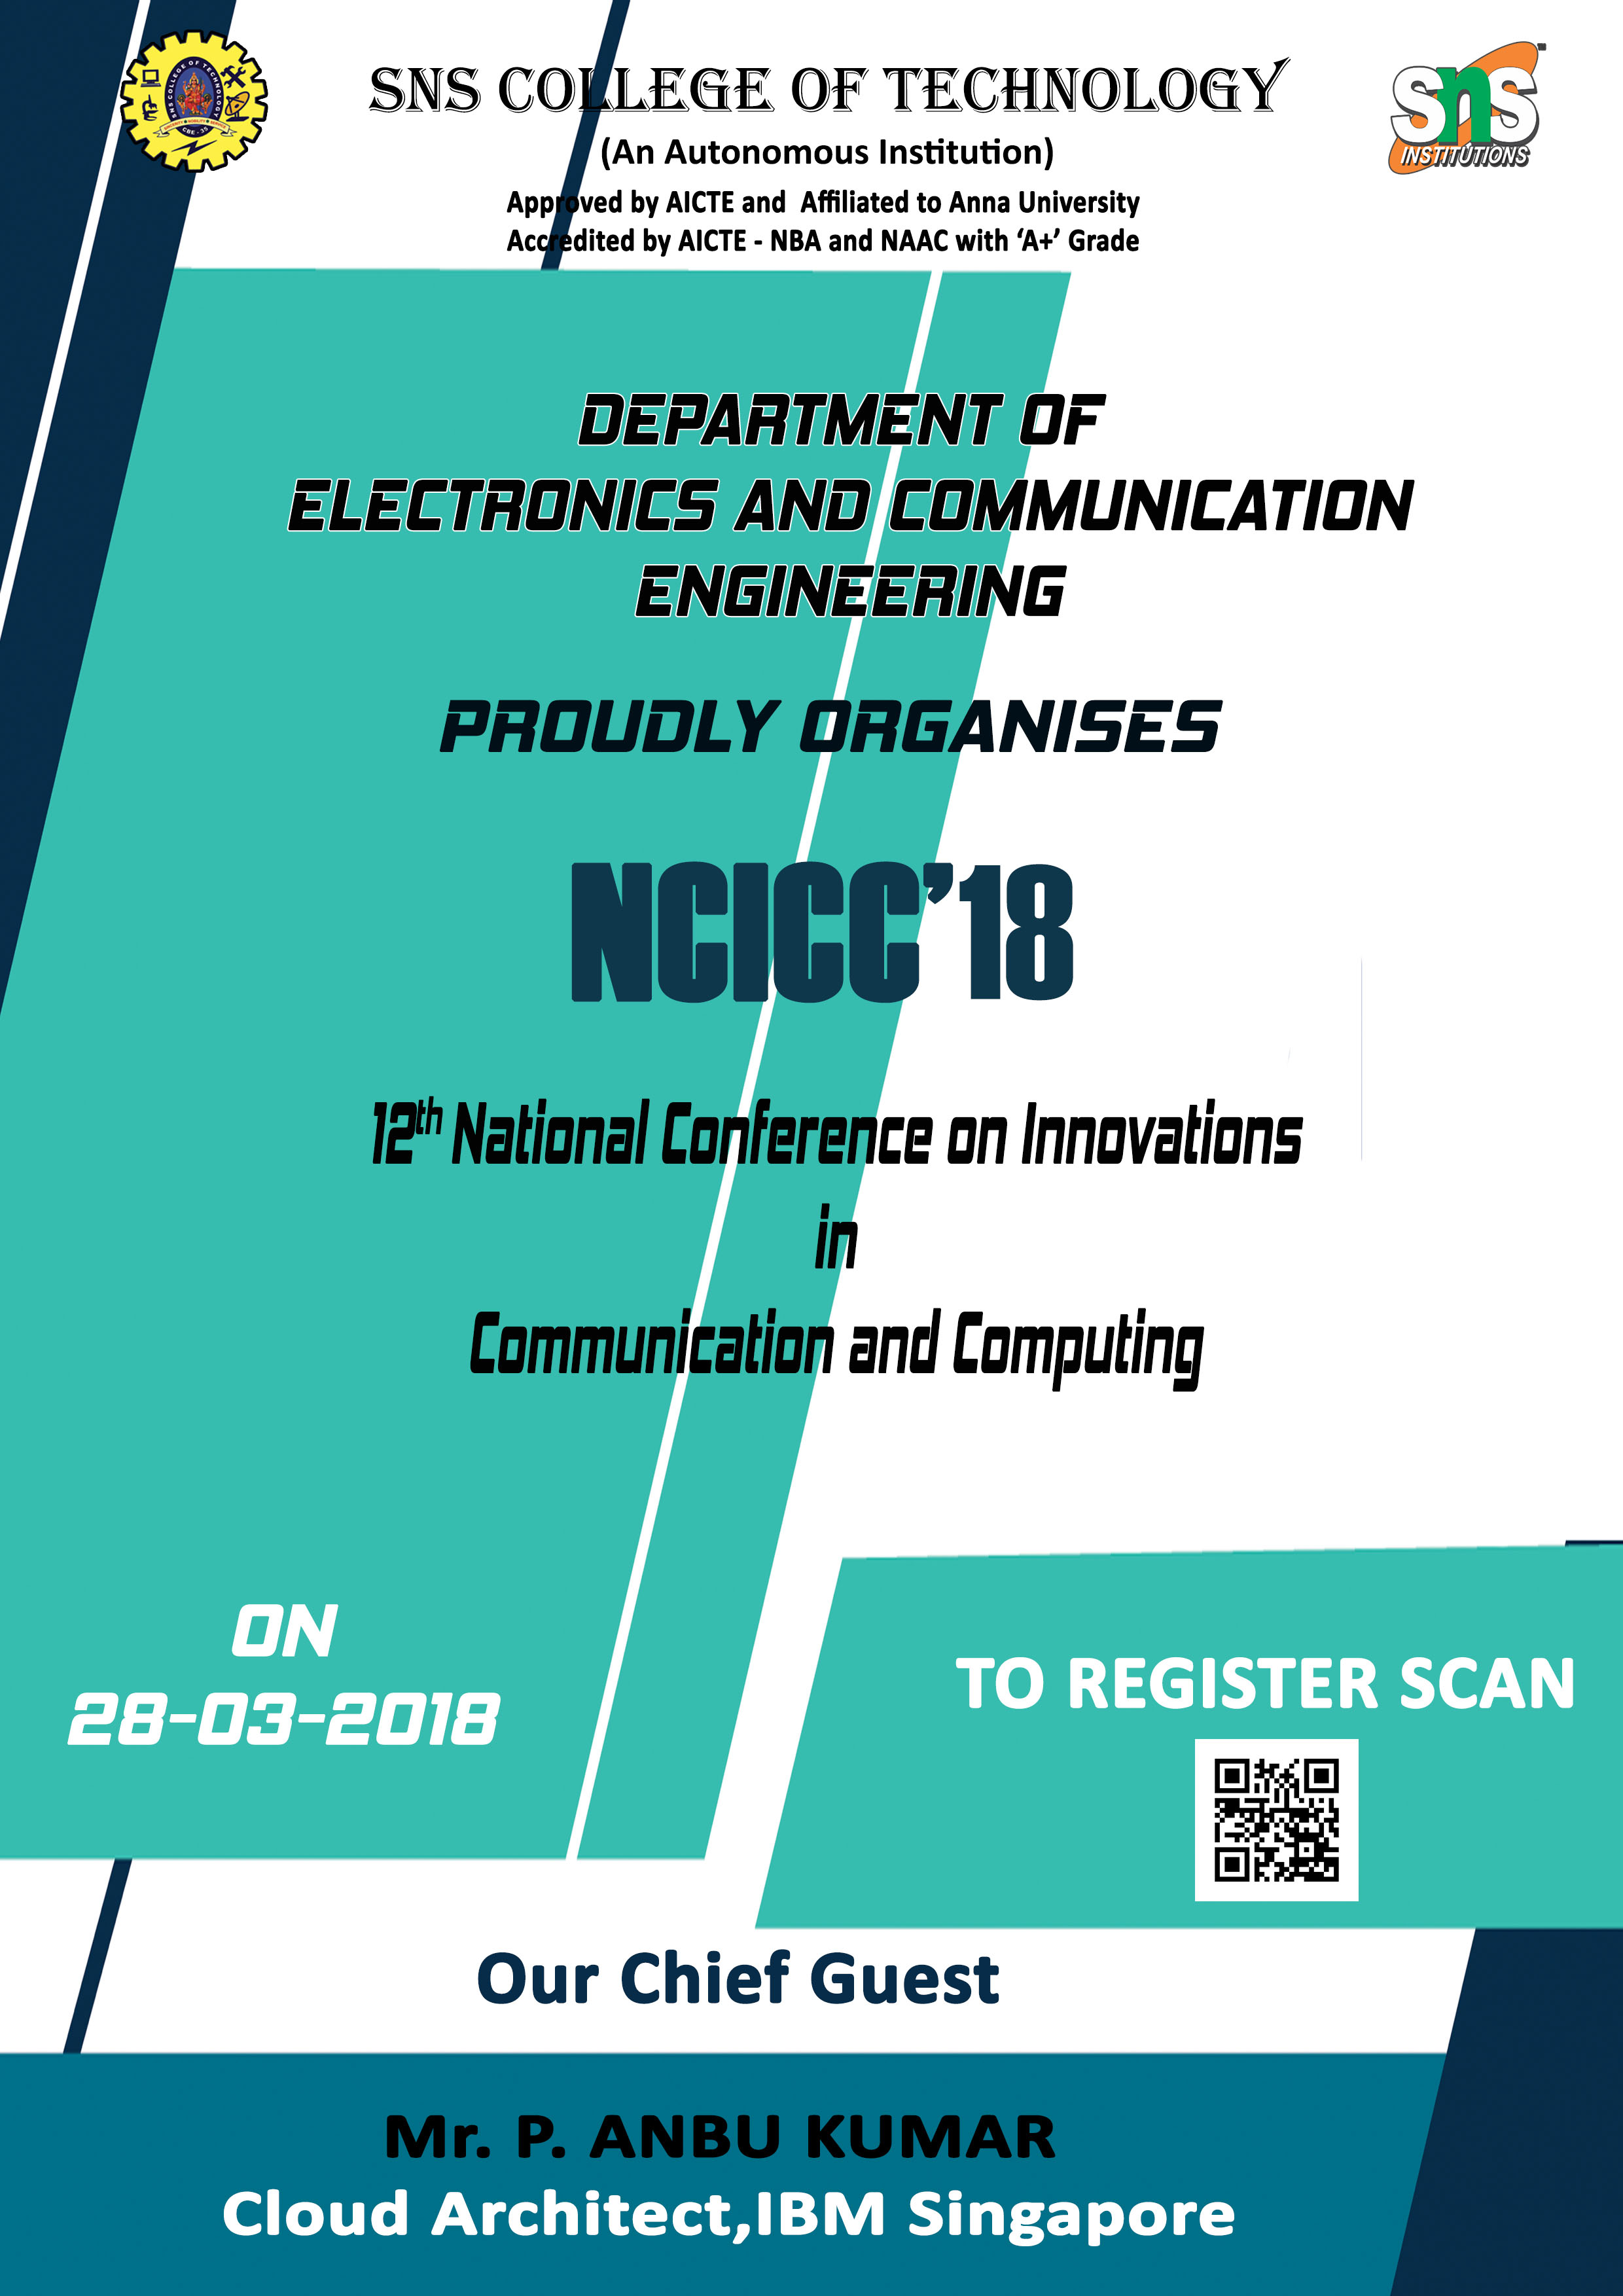 12th National Conference on Innovations in Communication and Computing 2018